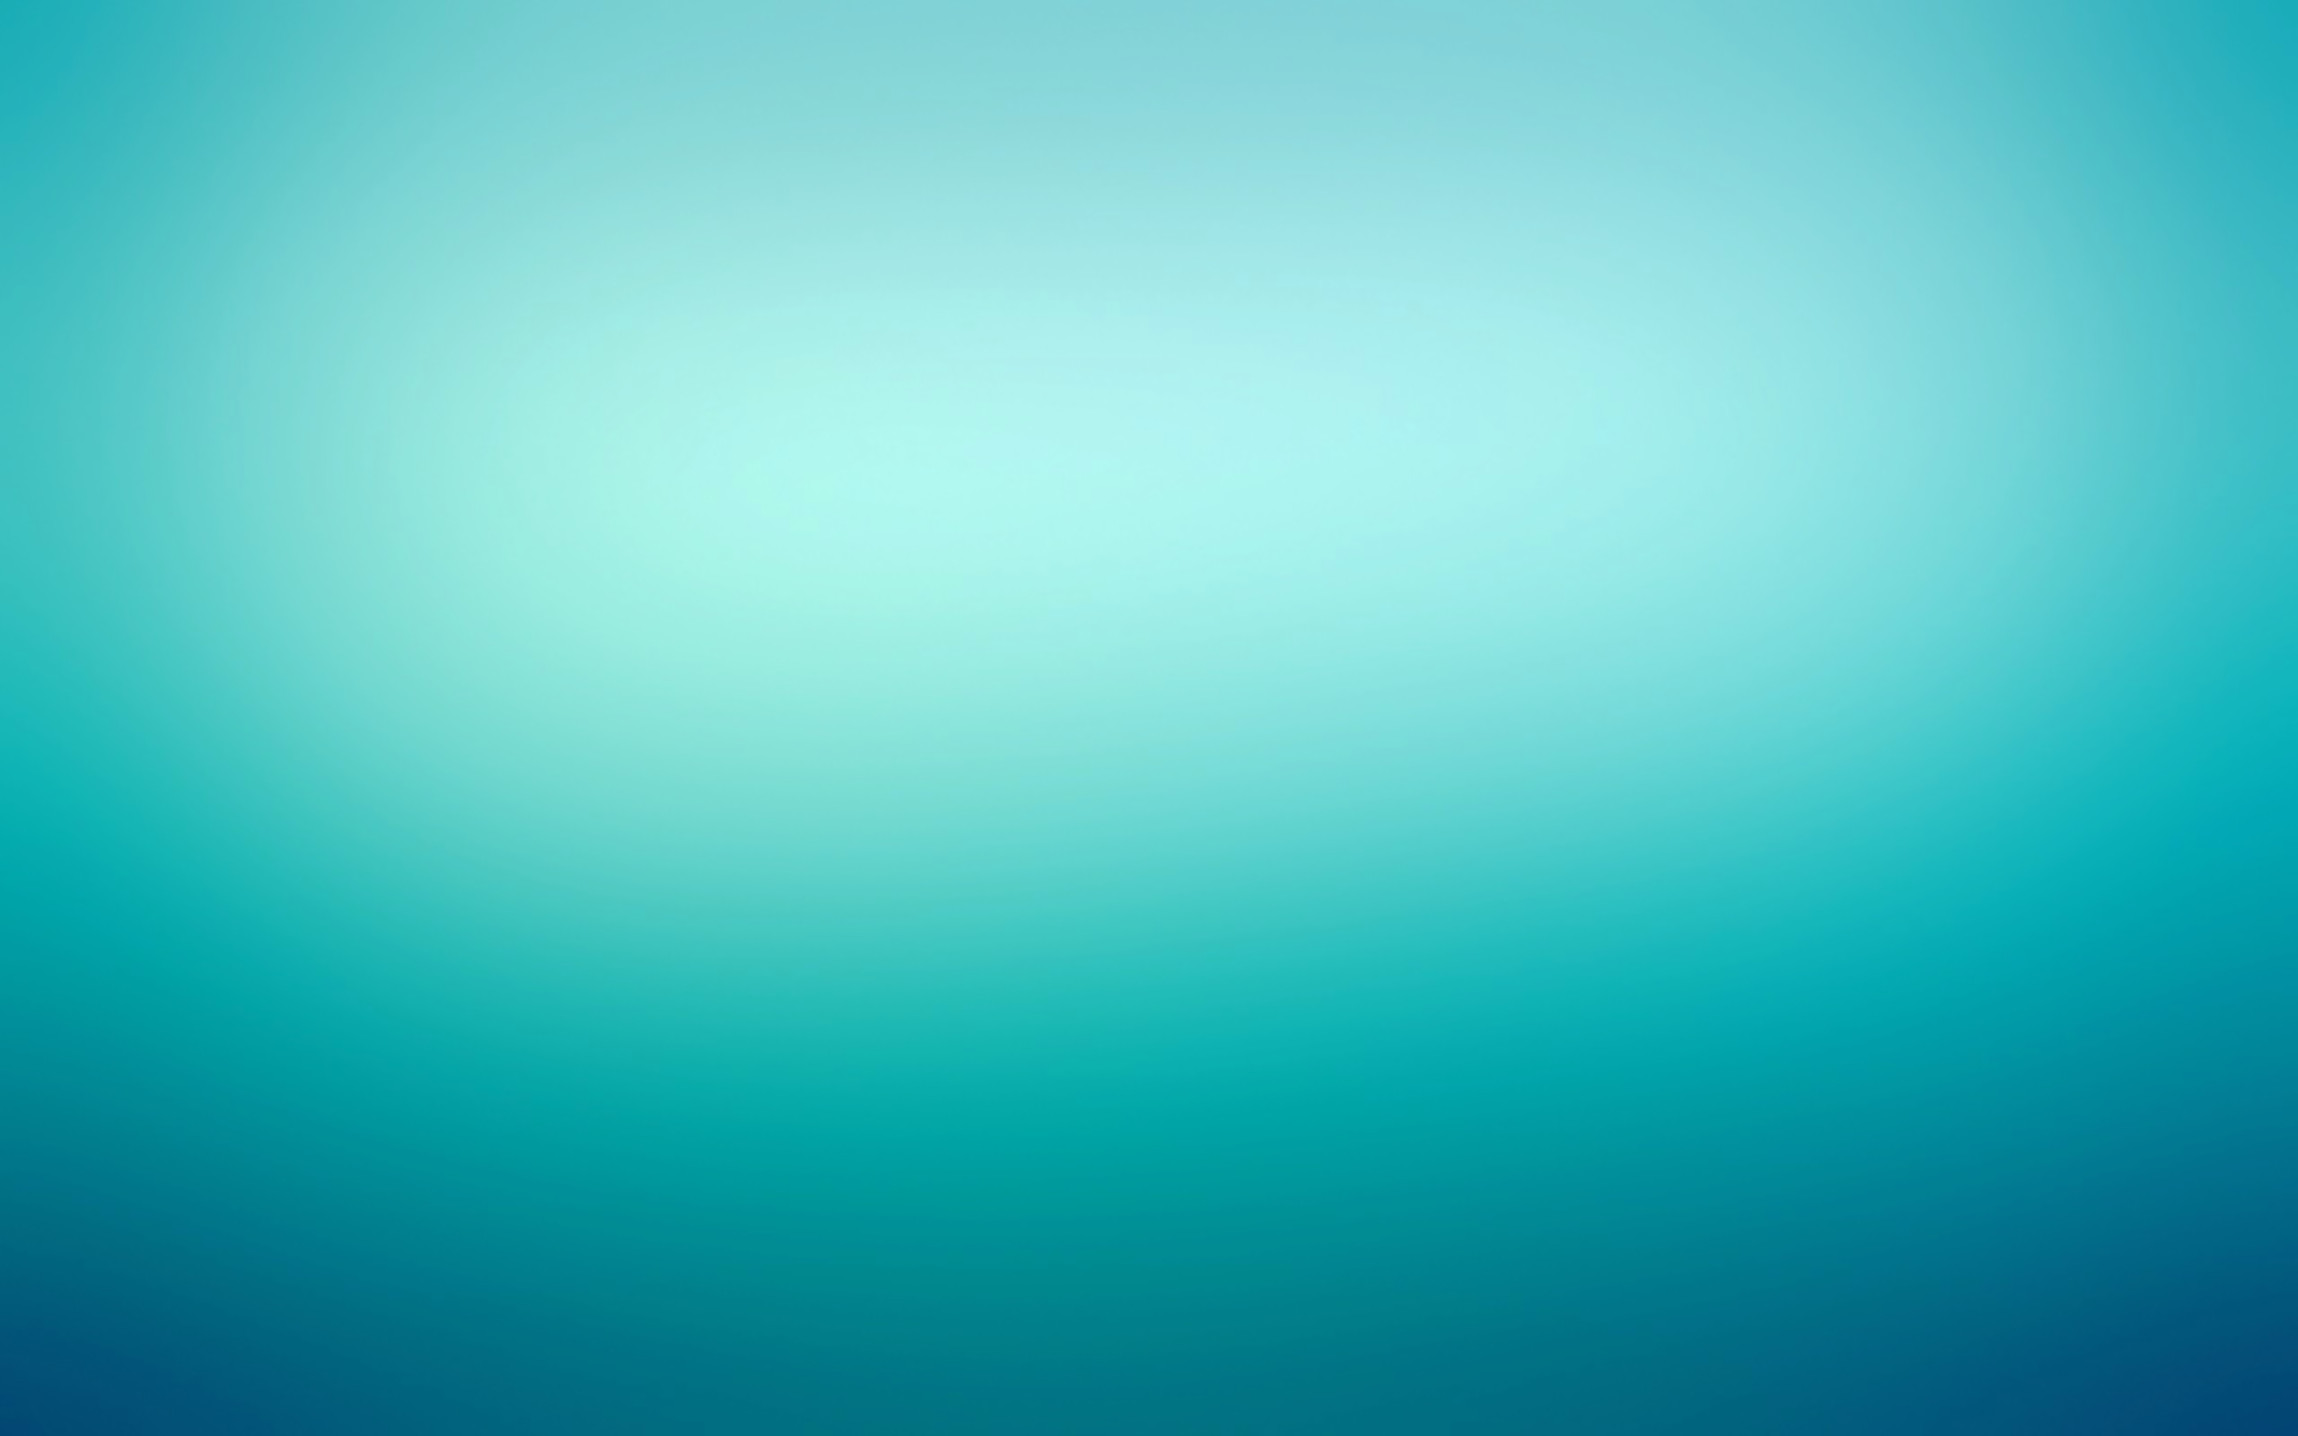 356929-best-turquoise-background-2560x16